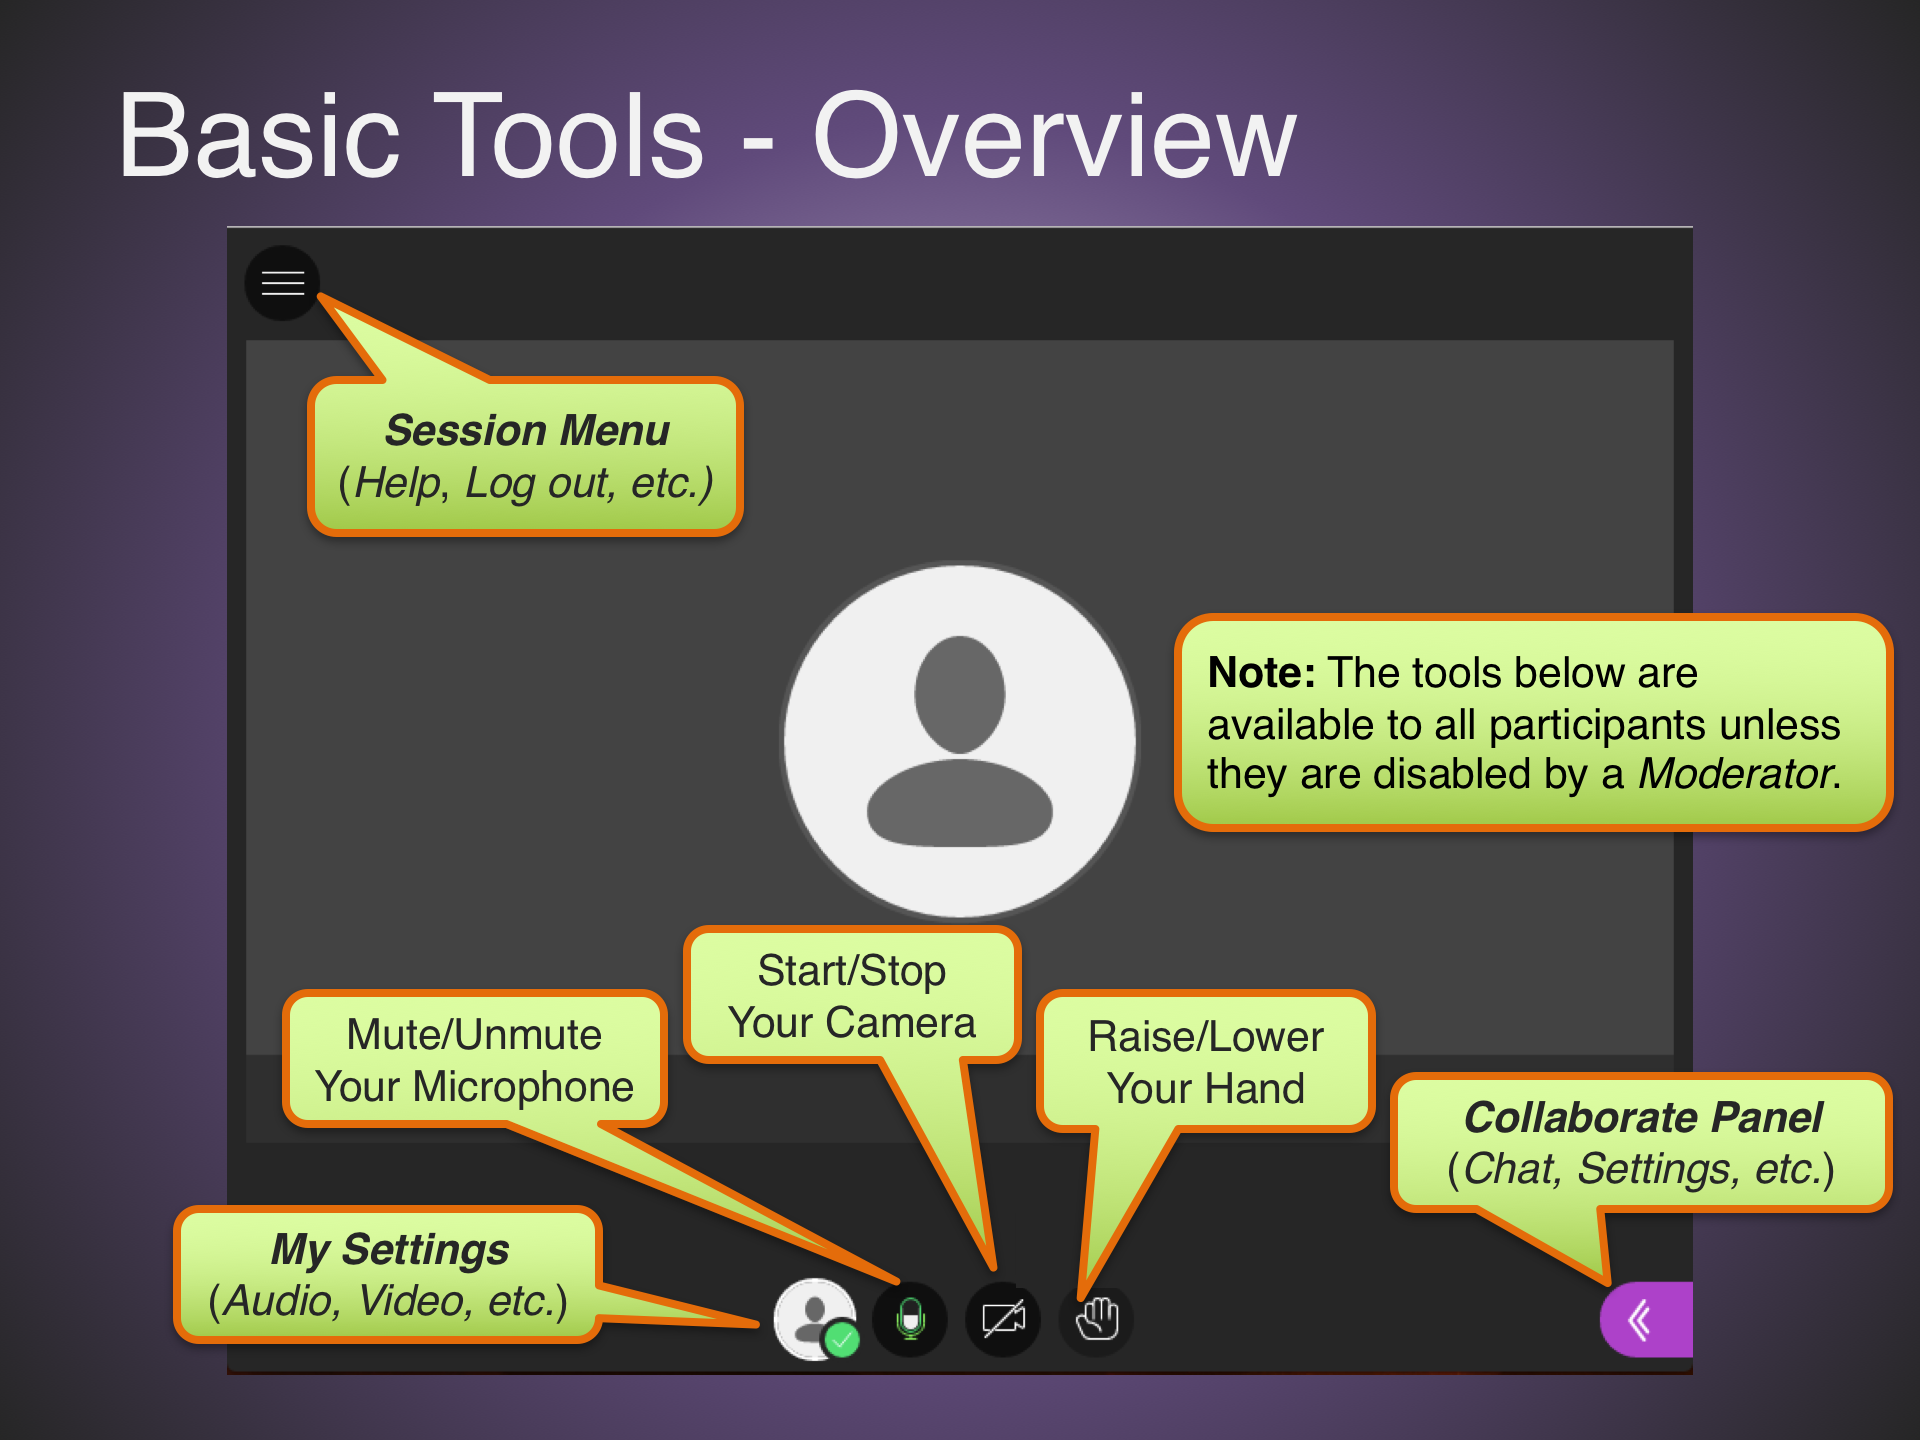 Basic Tools - Overview